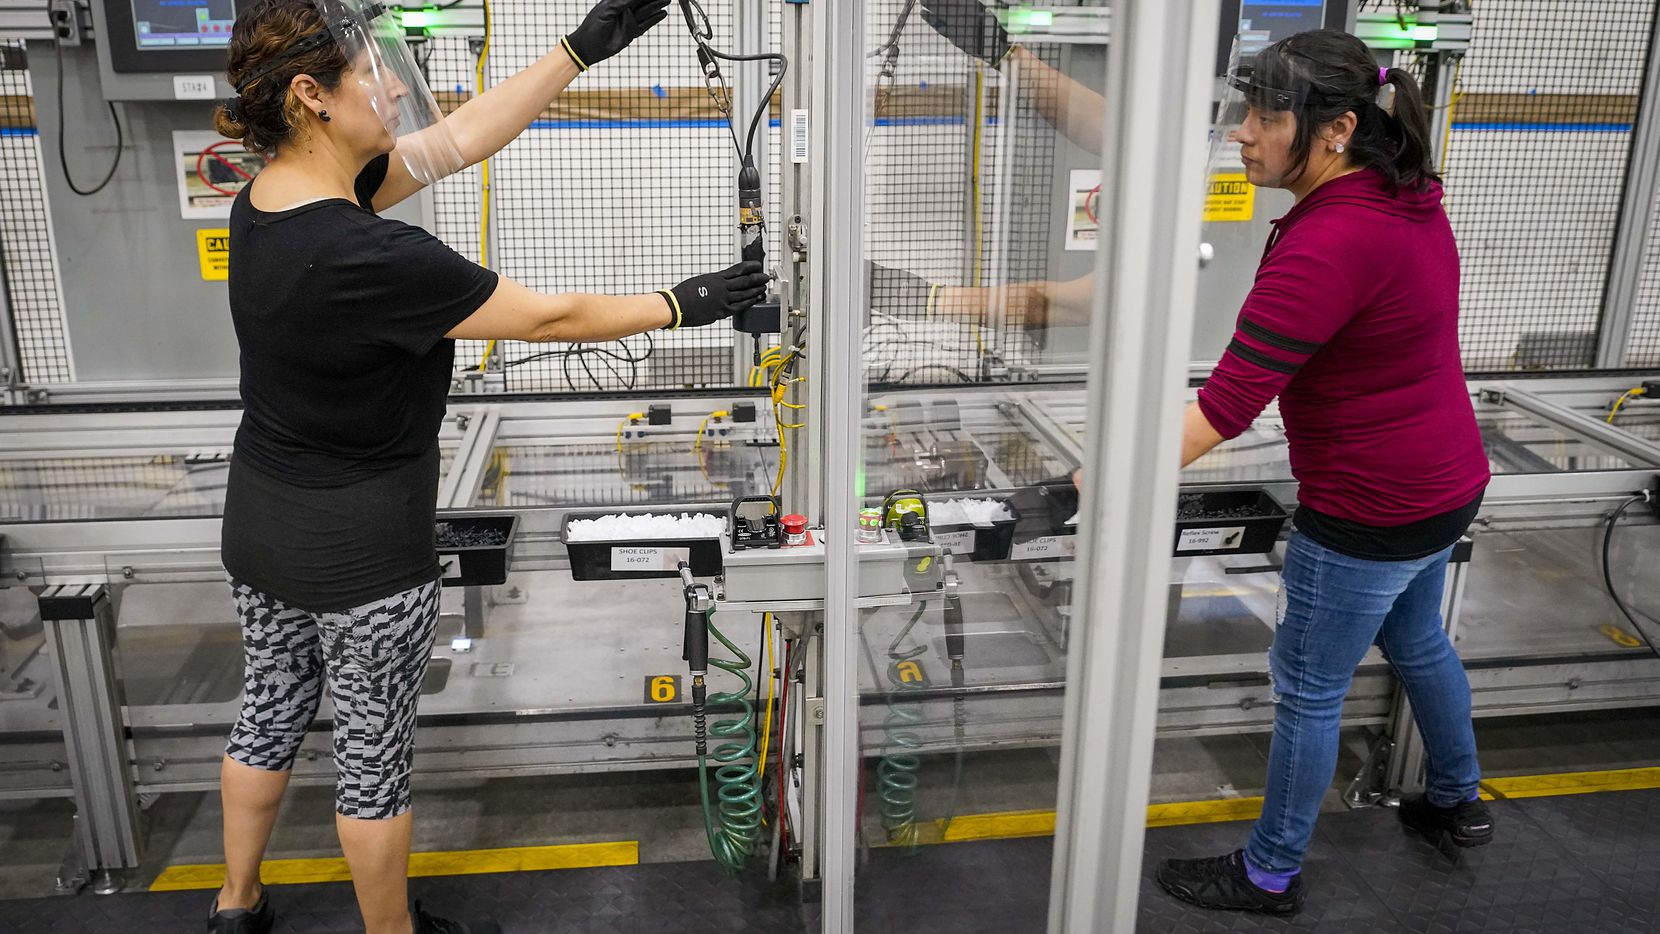 Blanca Ortega, left, and Sacnite Sanchez are separated by a clear barrier on a production line at Flex-N-Gate Texas. The Grand Prairie auto parts supplier built its own barriers as part of an effort to improve worker safety during the pandemic.